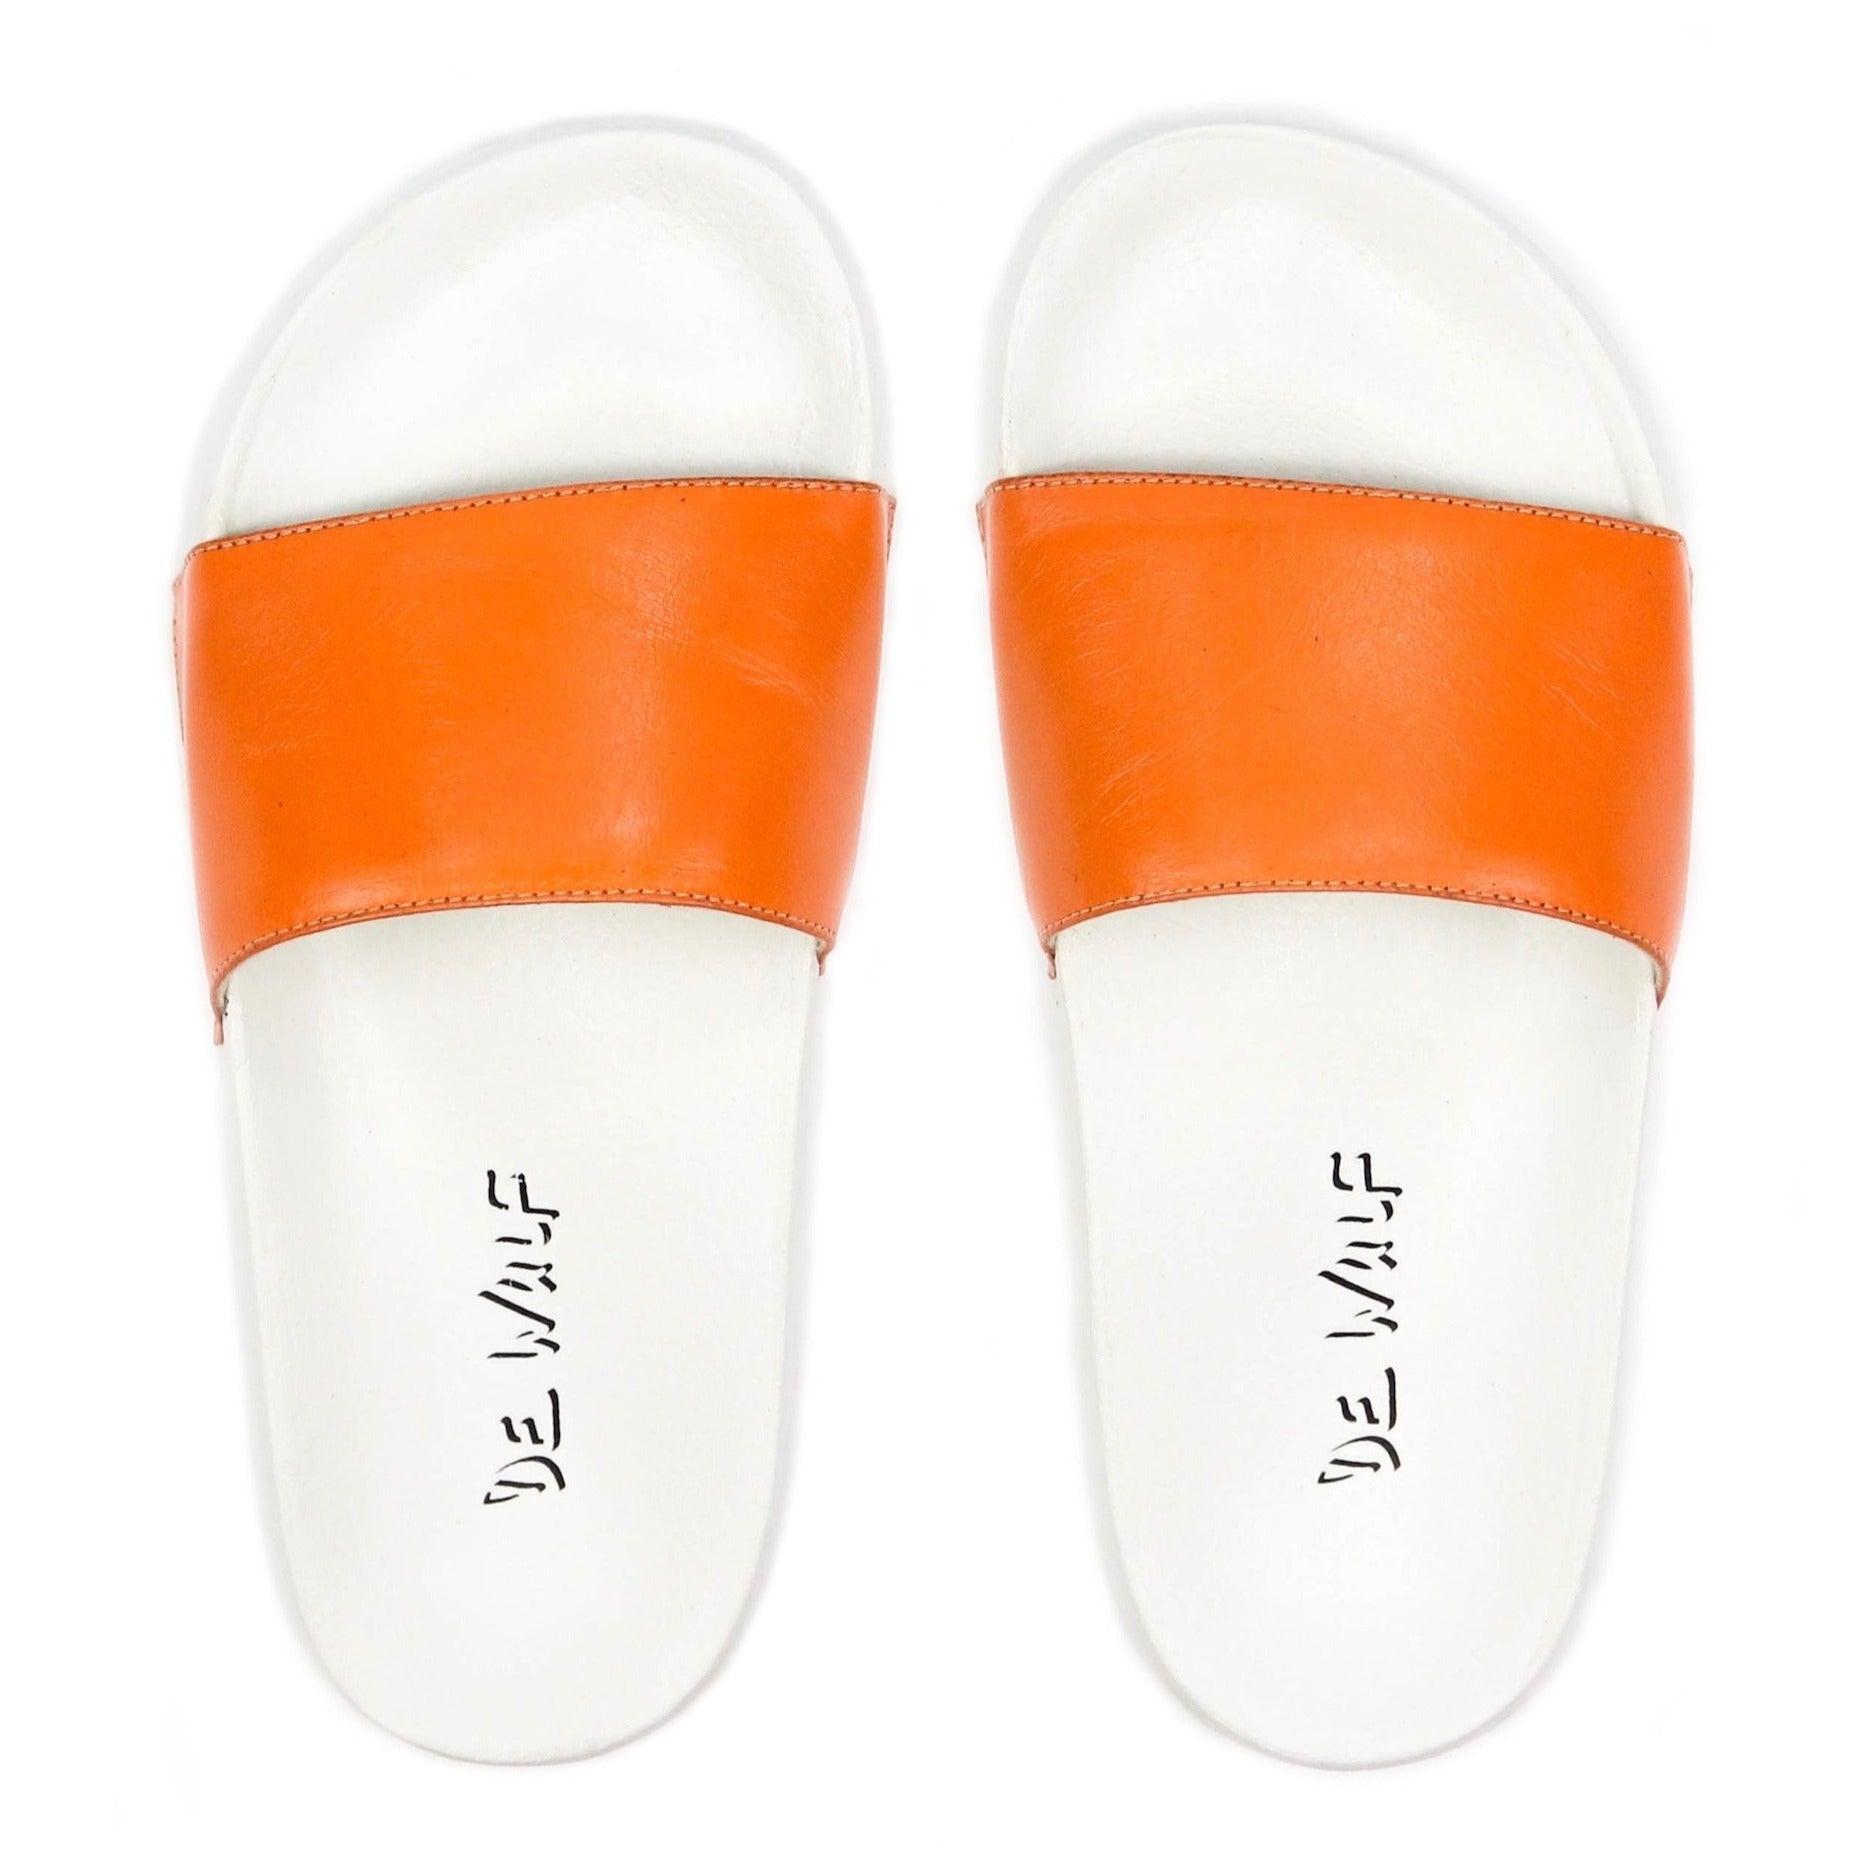 De wulf footwear, de wulf shoes, dewulf, men shoes, men slides, men flip flops, men leather shoes, men orange slides, orange flip flops